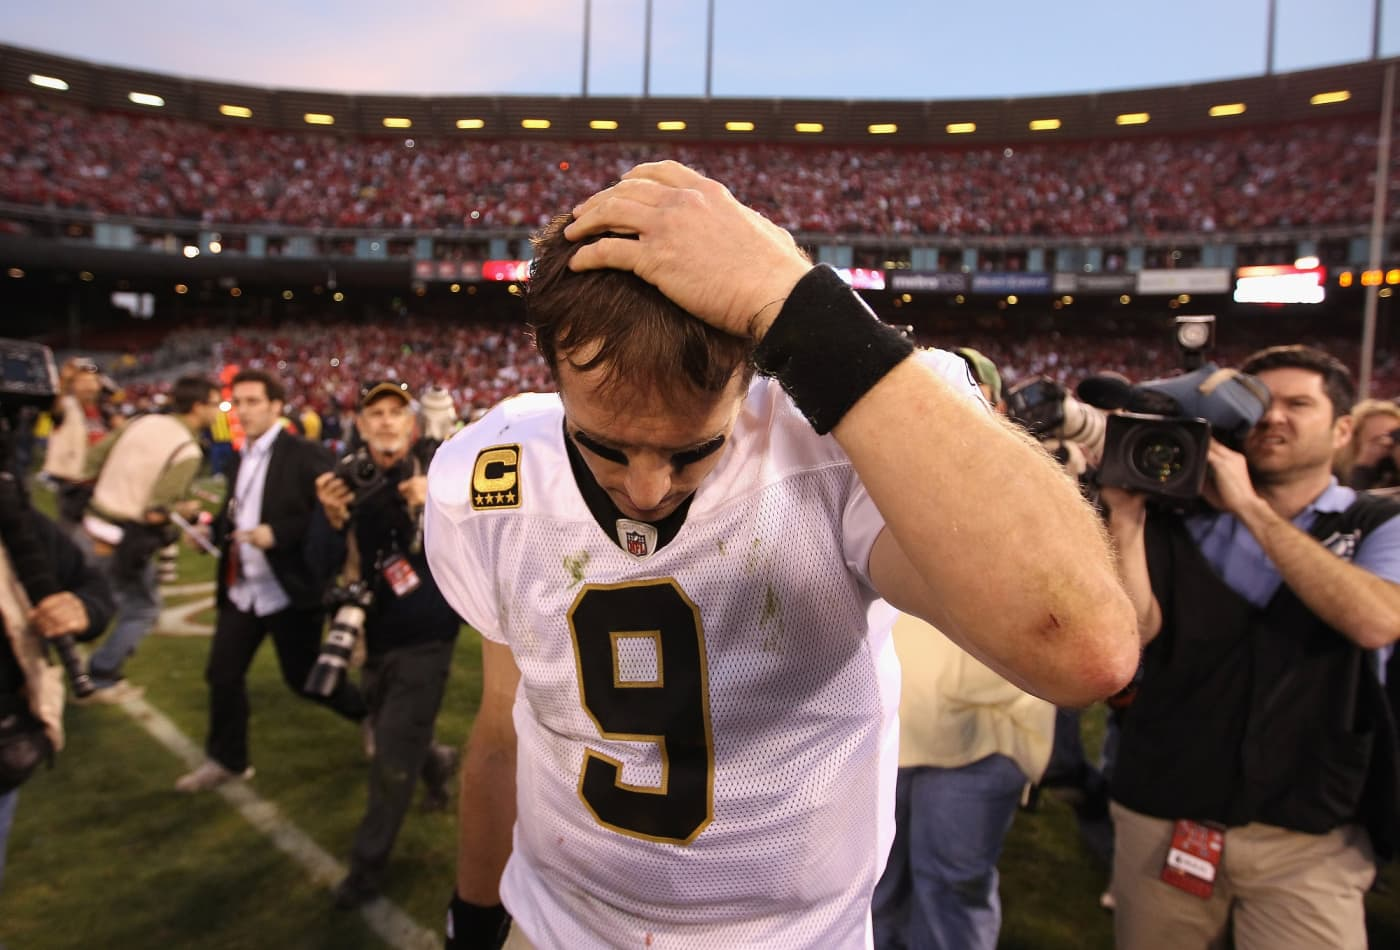 Saints Qb Drew Brees Lost 9 Million To What He Calls A Scam